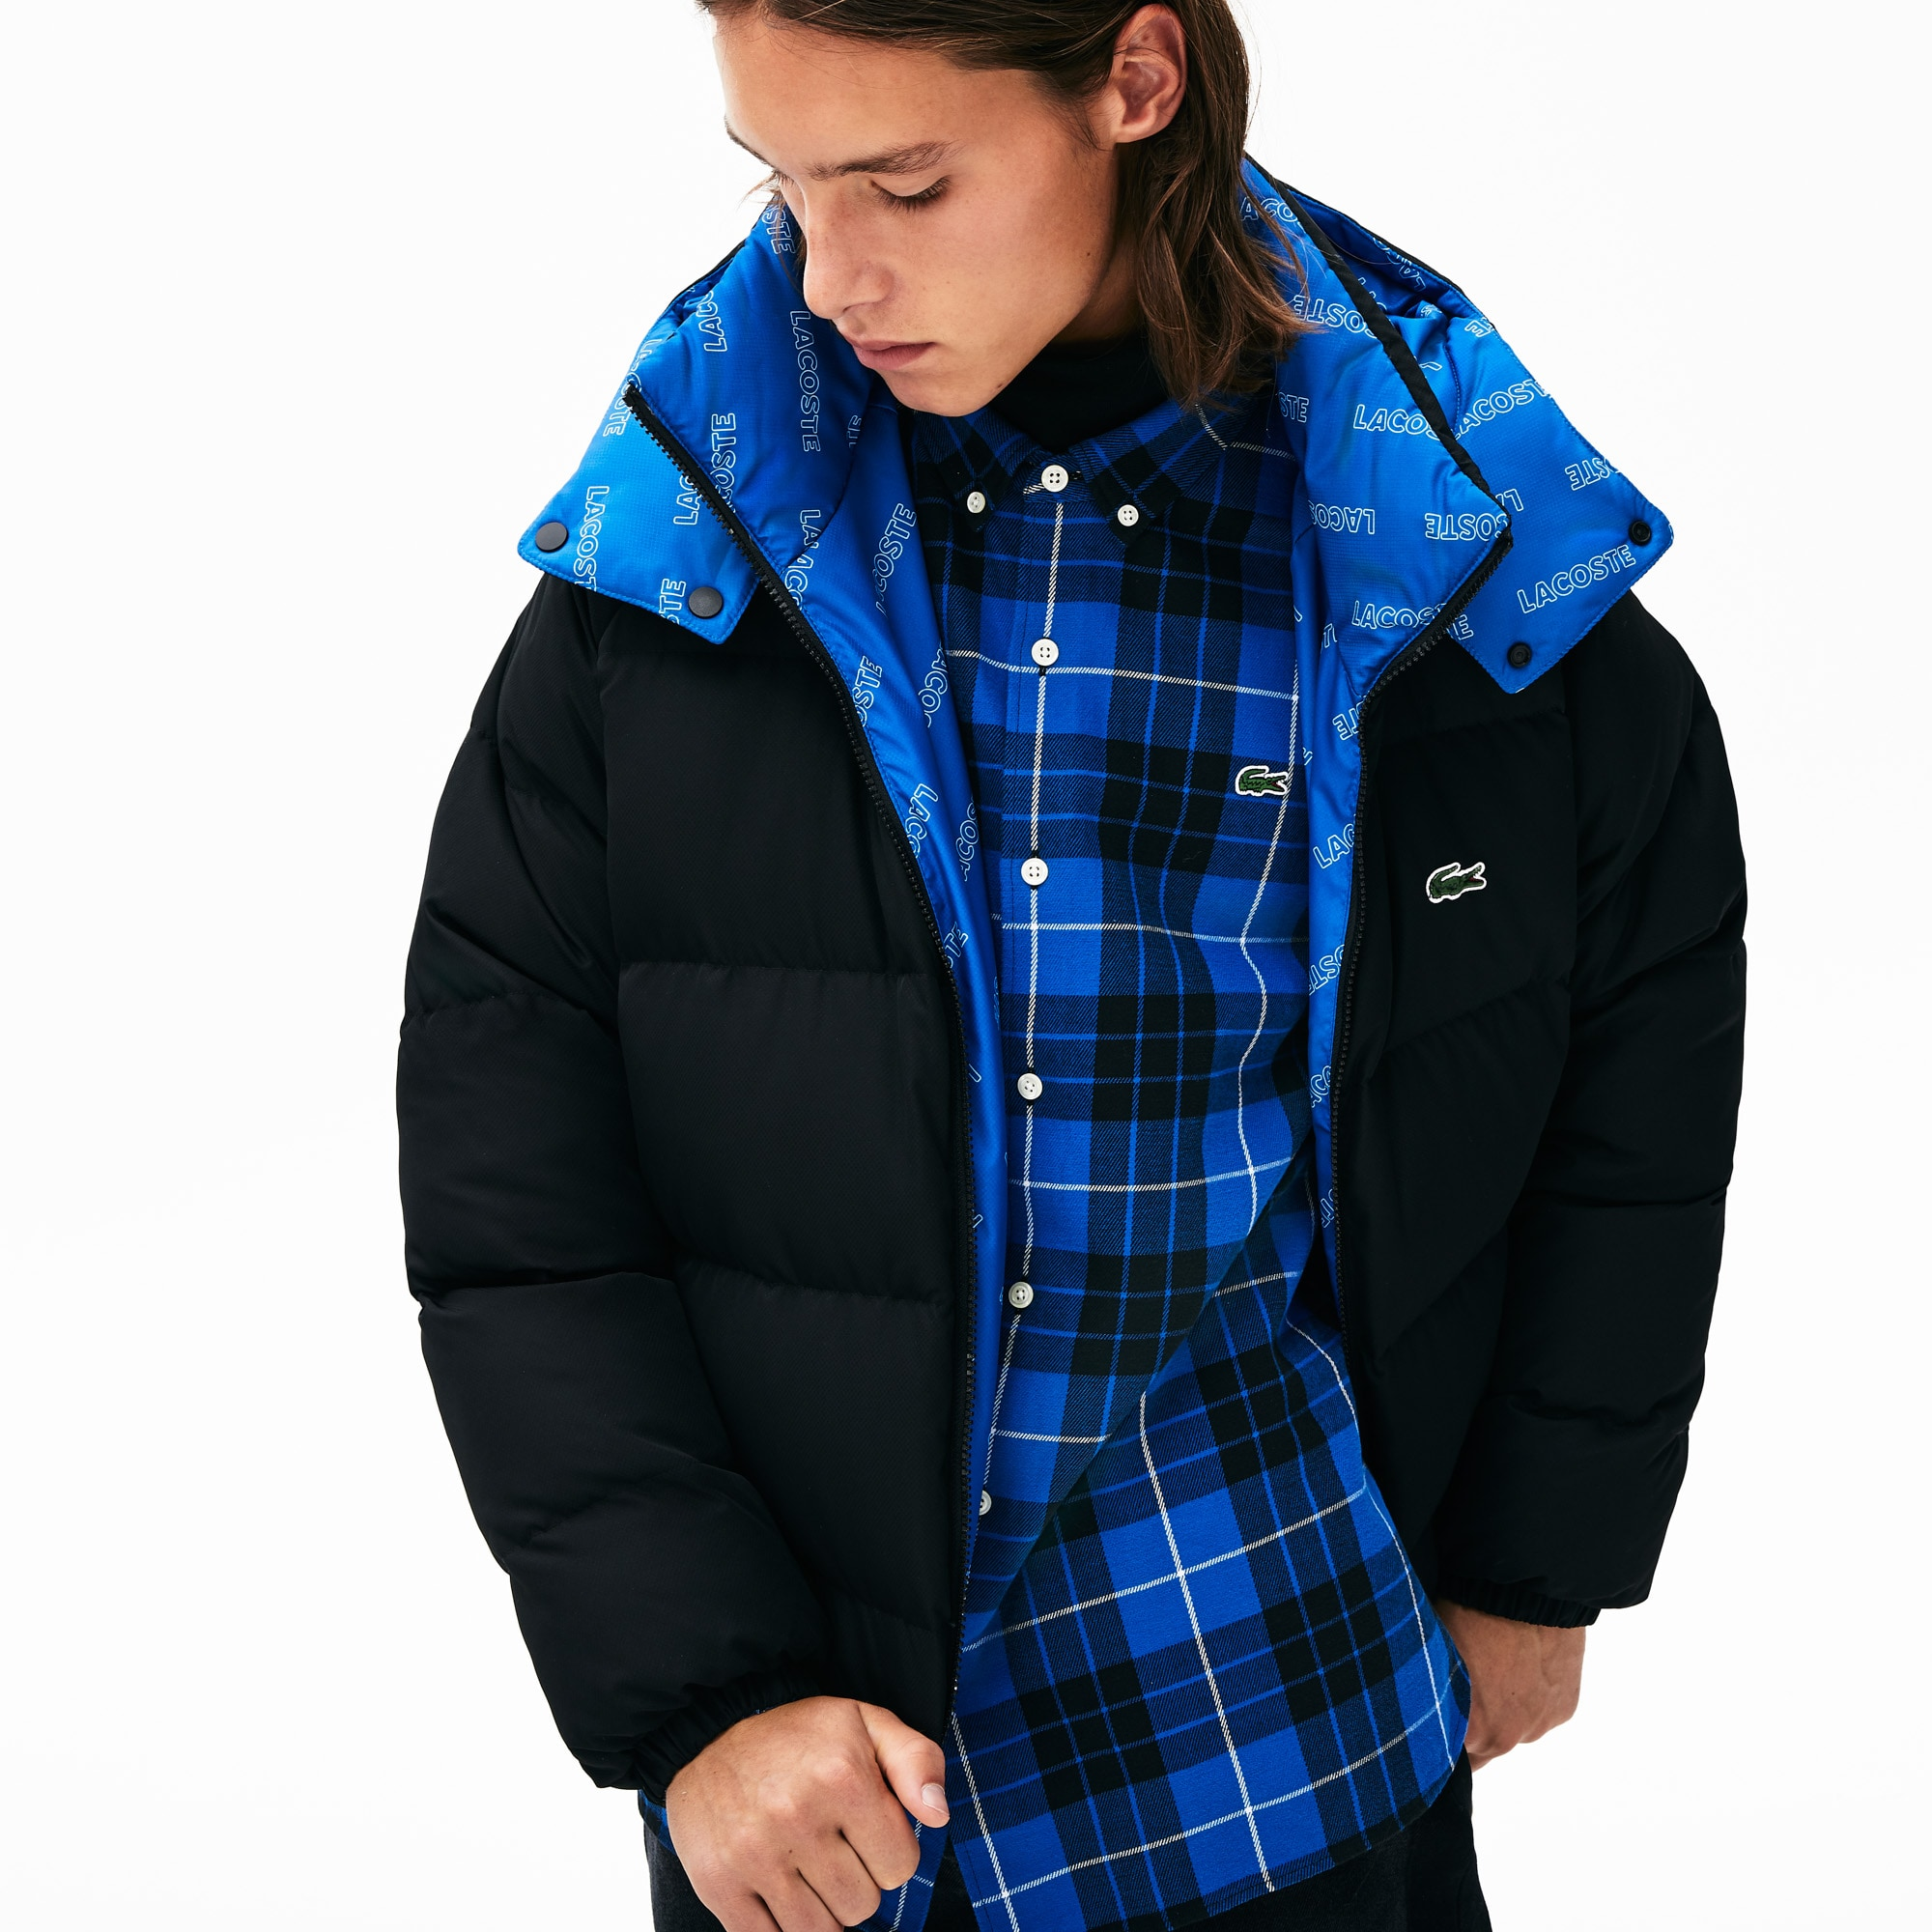 Men's LIVE Print-Lined Reversible Quilted Jacket